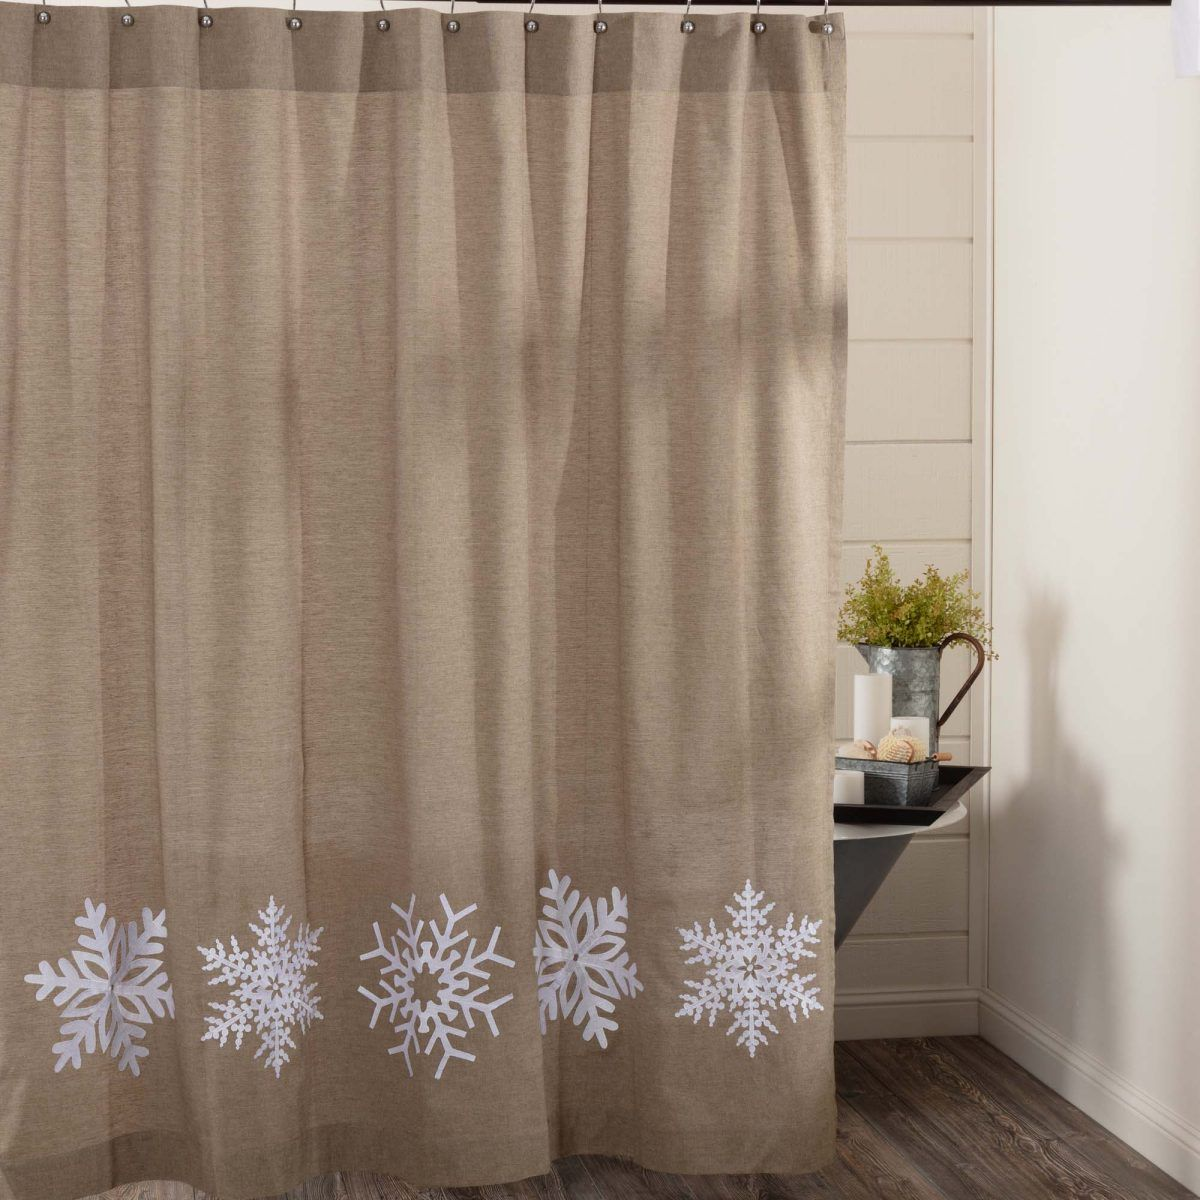 Snowflake Embroidered Shower Curtain Plaid Shower Curtain